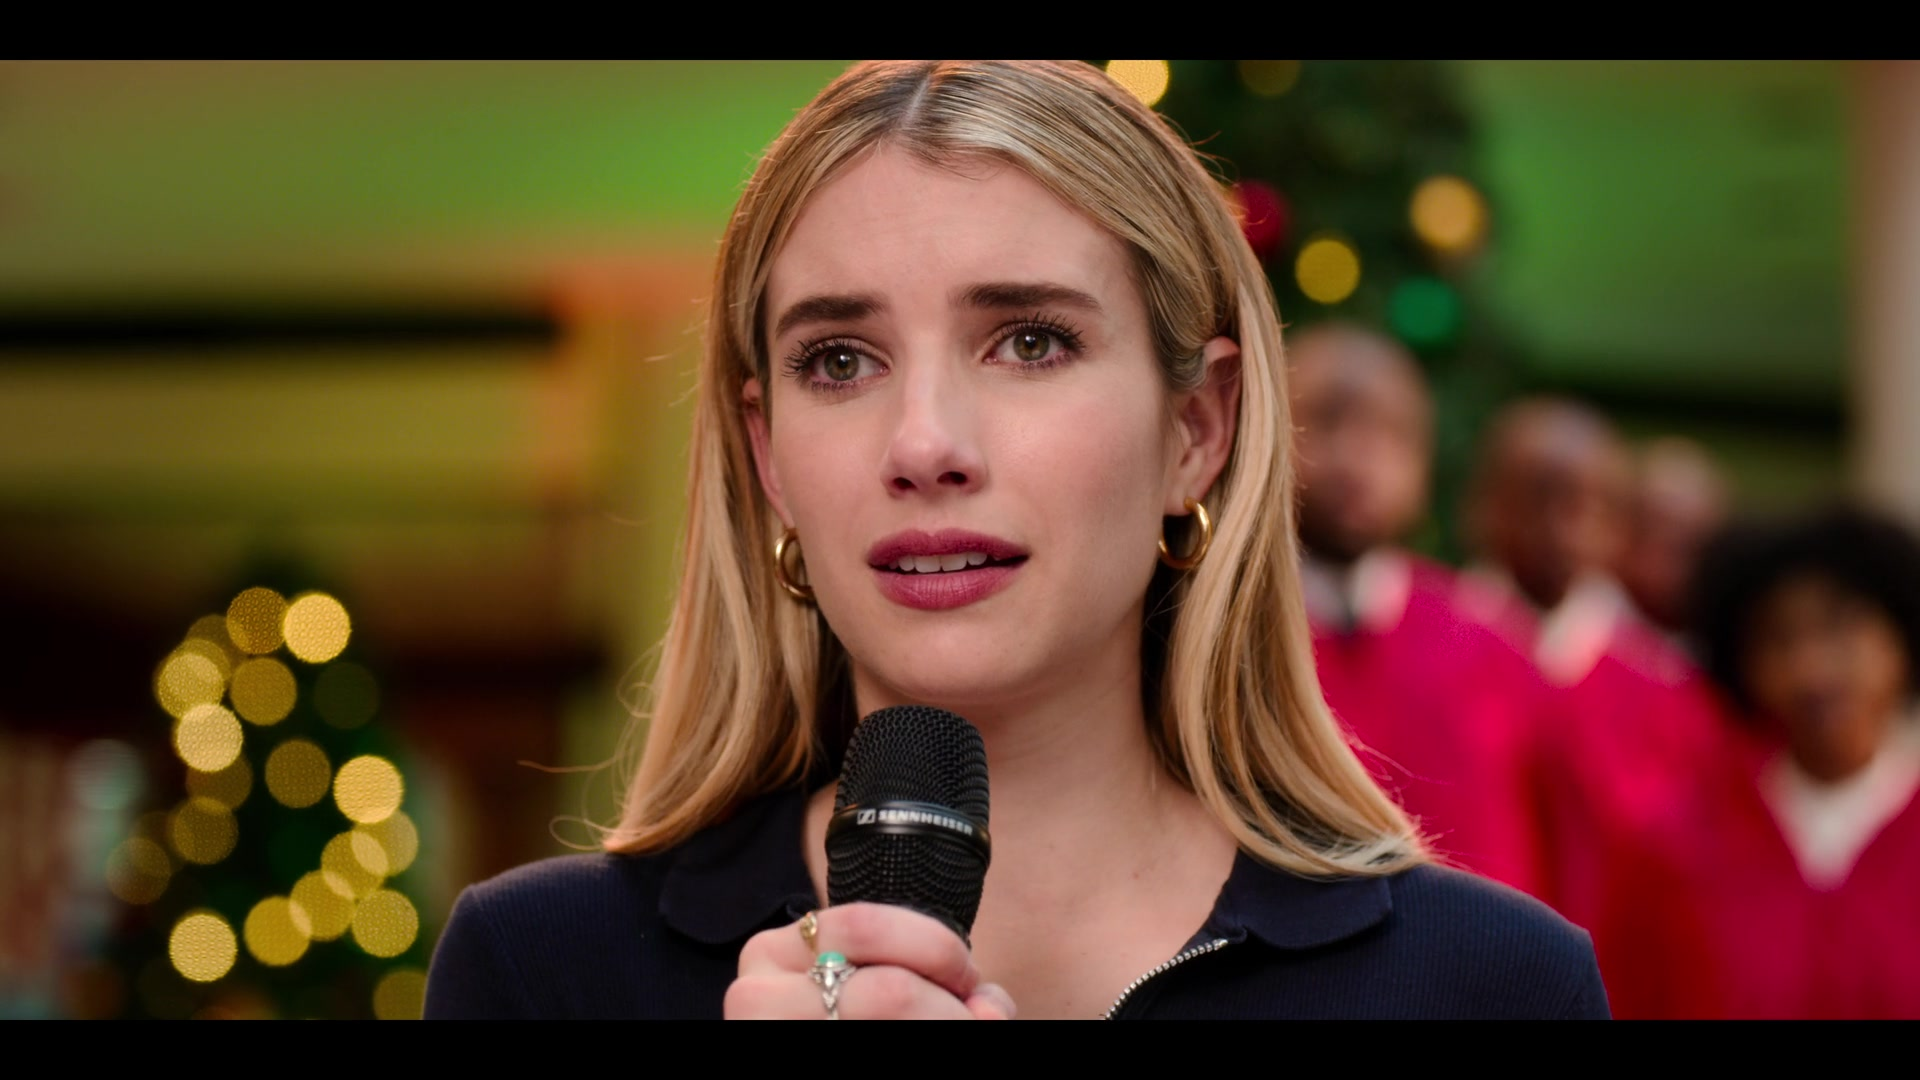 Sennheiser Microphone Used By Emma Roberts As Sloane In Holidate (2020)